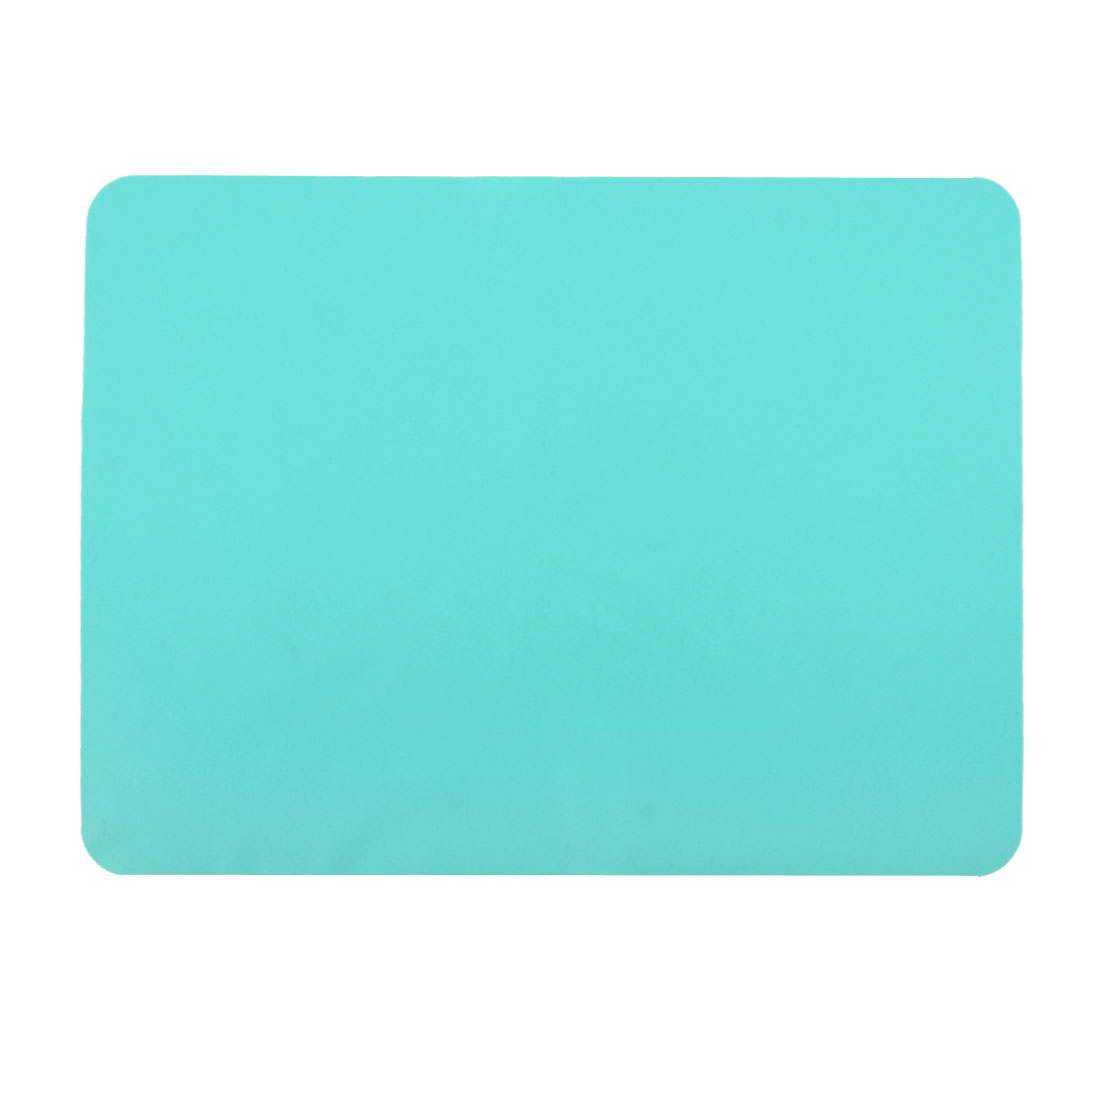 Home Restaurant Silicone Table Heat Resistant Baking Mat Cushion ...